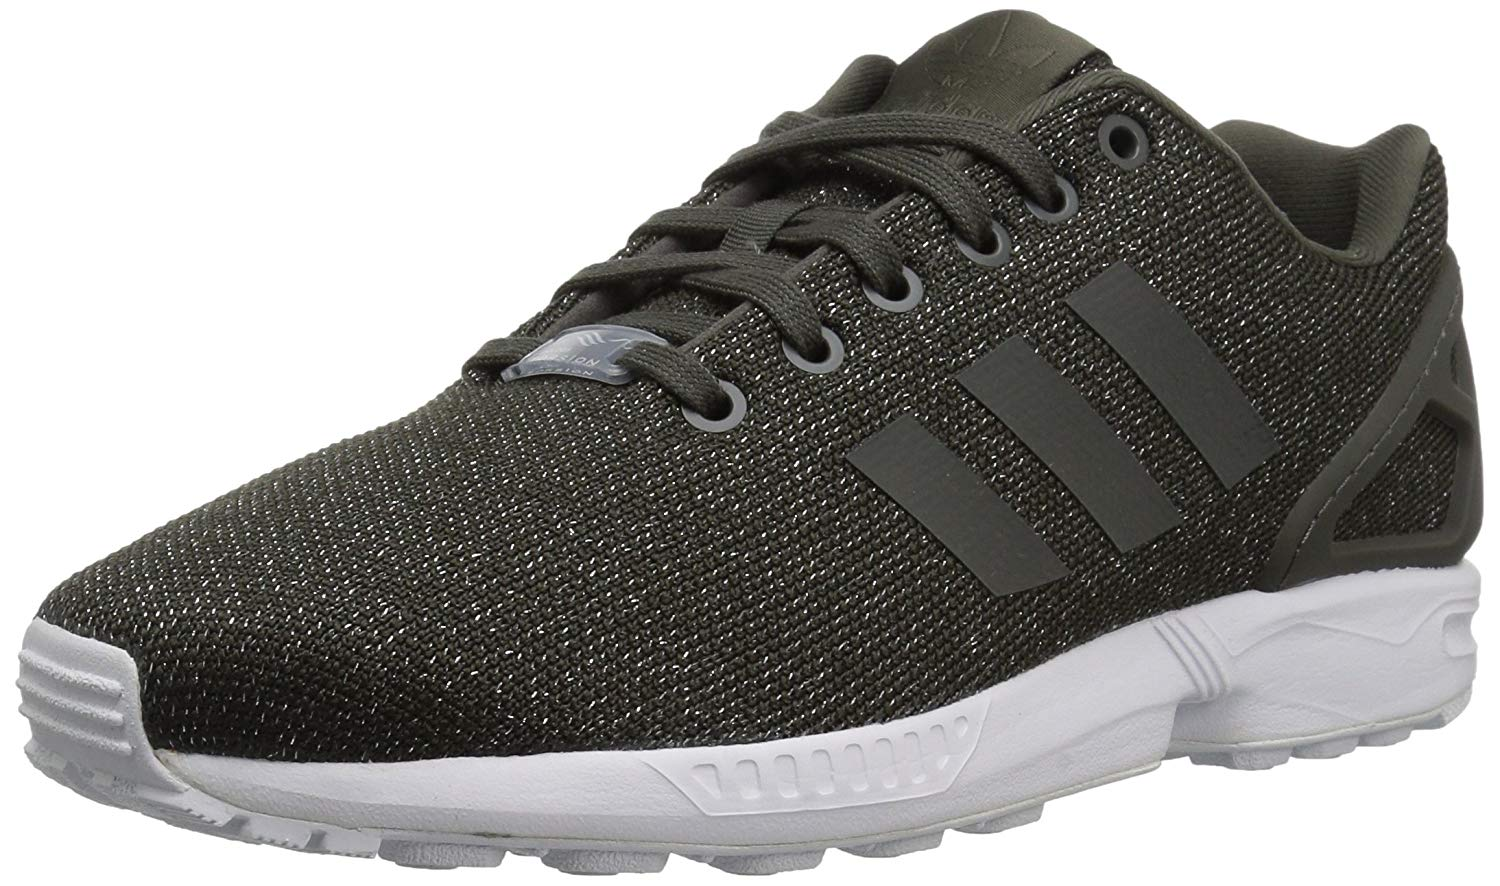 dbca9911ac5f Adidas ZX Flux W BB2262 Womens Fashion Sneakers Utility Grey Utility ...